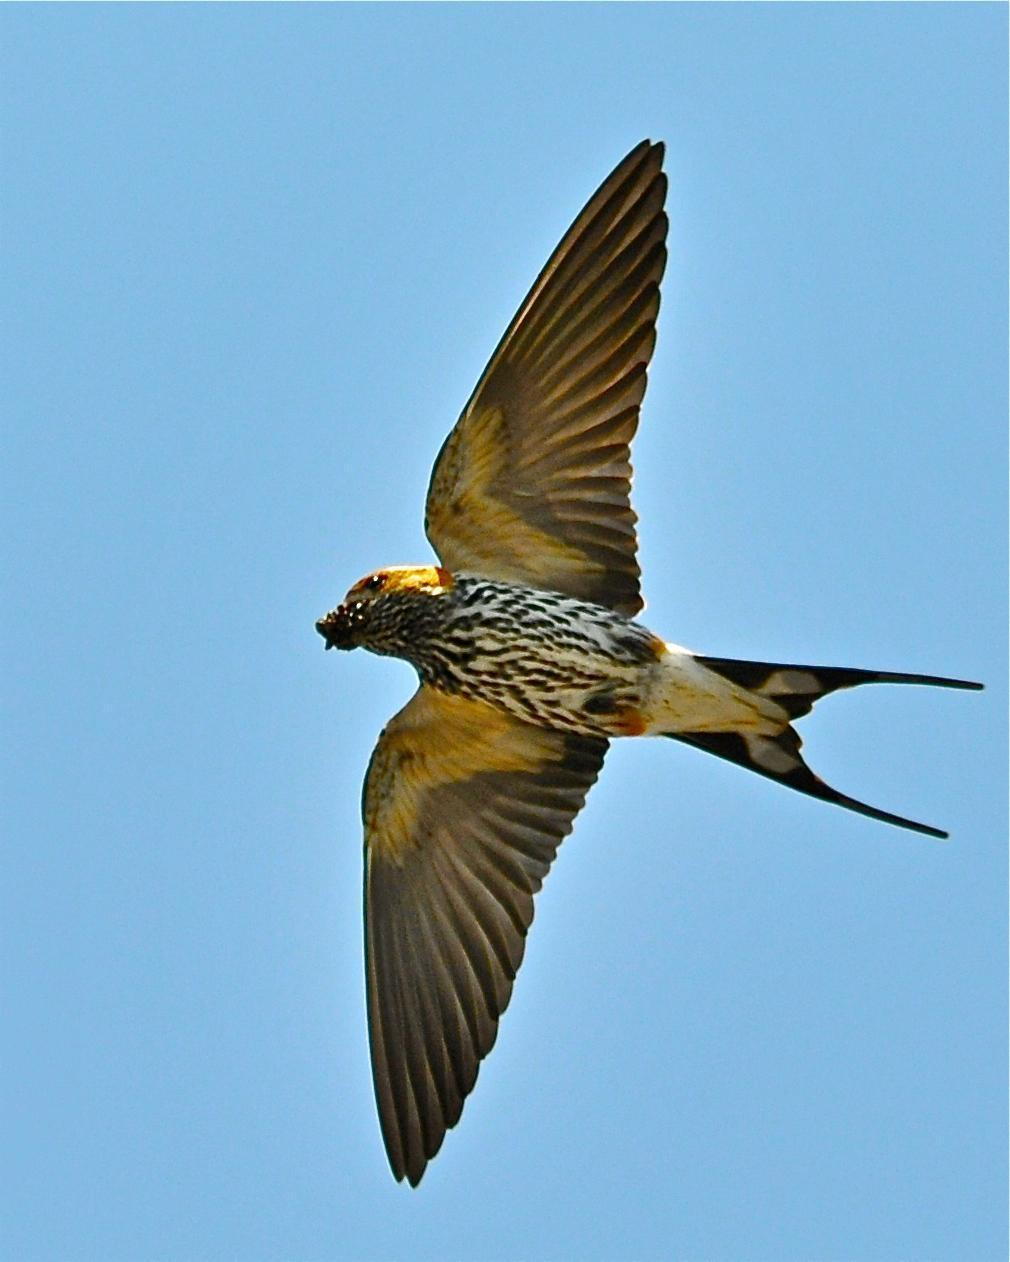 Lesser Striped Swallow Photo by Gerald Friesen